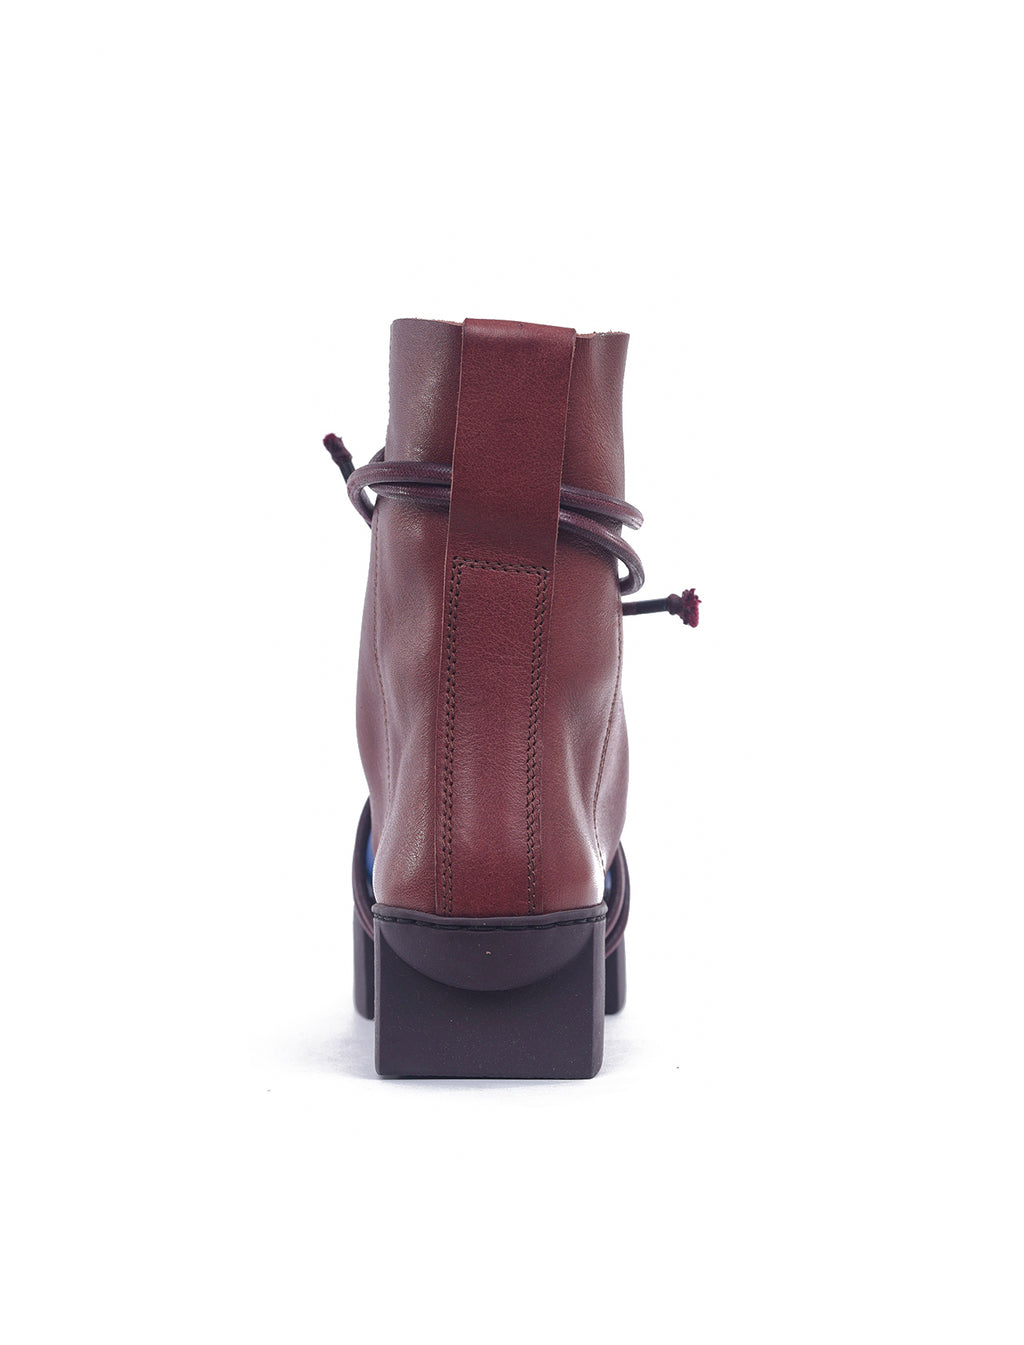 Trippen Shoes Pulley Box Boot, Cotto Rust Waw